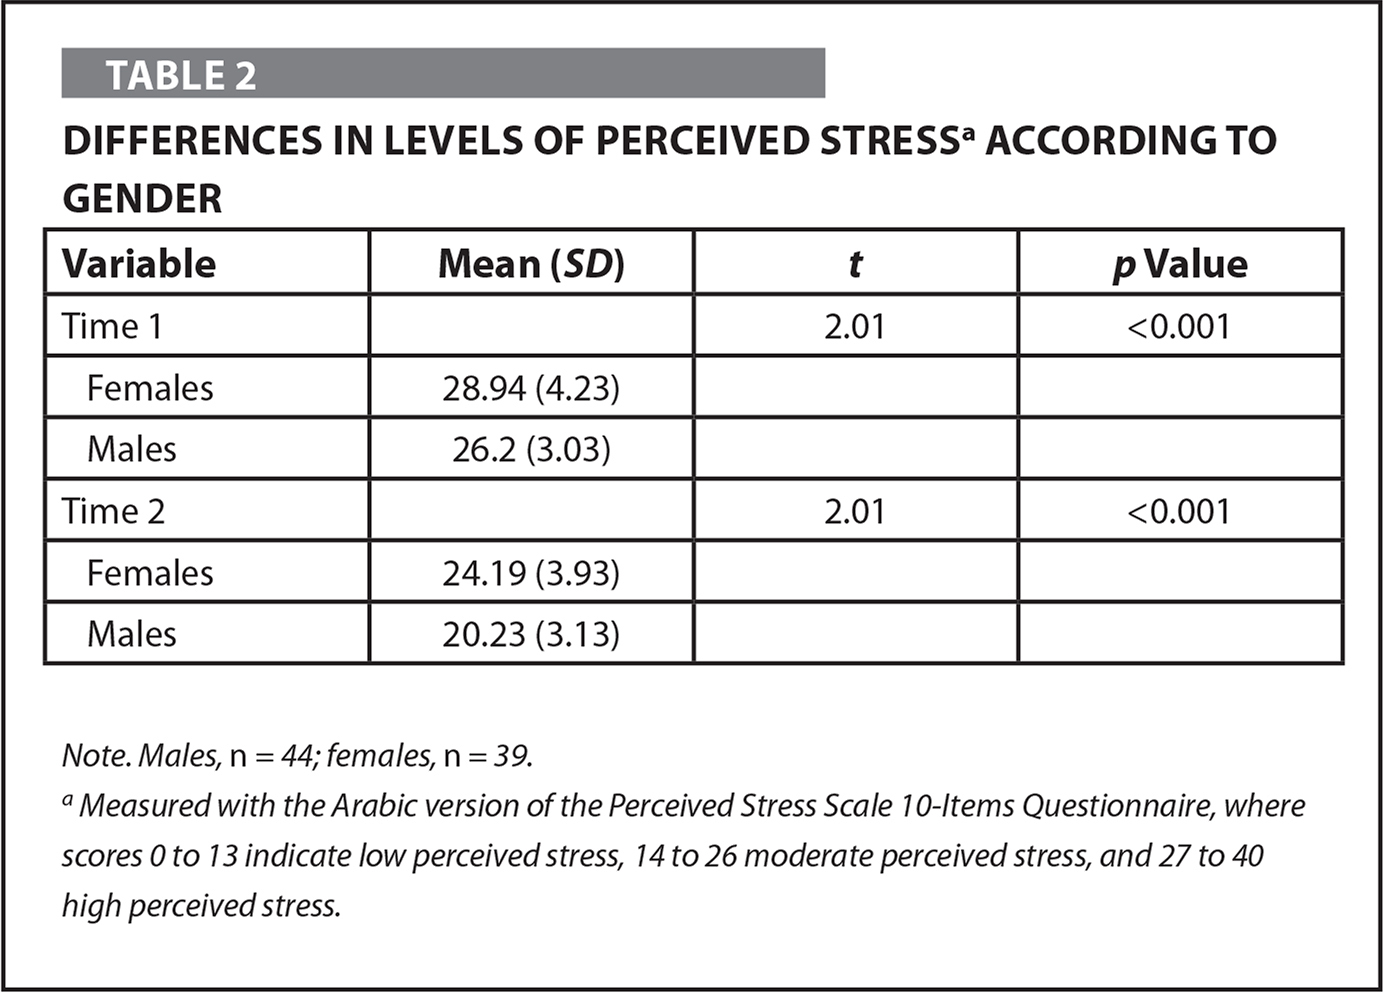 Differences in Levels of Perceived Stressa According to Gender